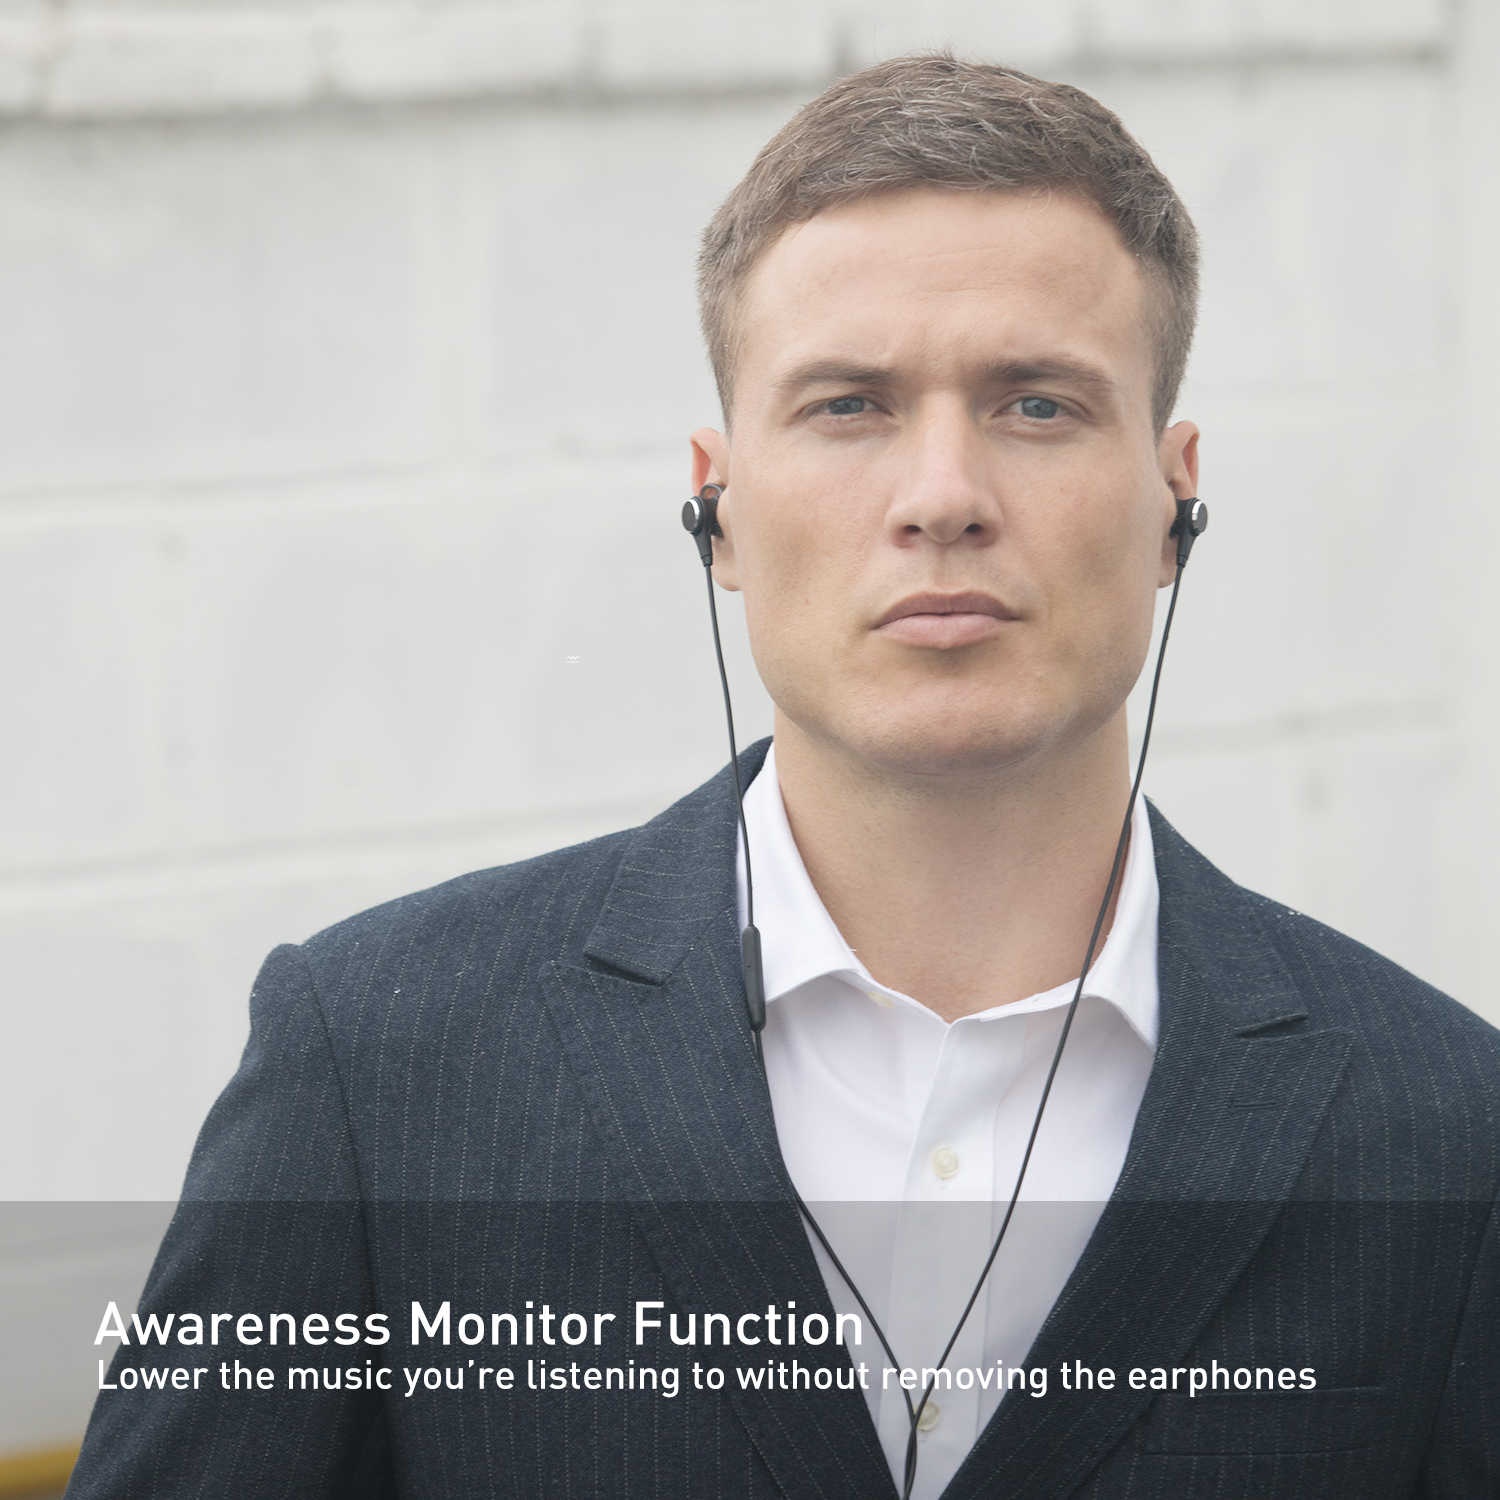 Monitoring Function - Let you clearly hear airline or subway announcements and what's around you without having to removing earbuds.